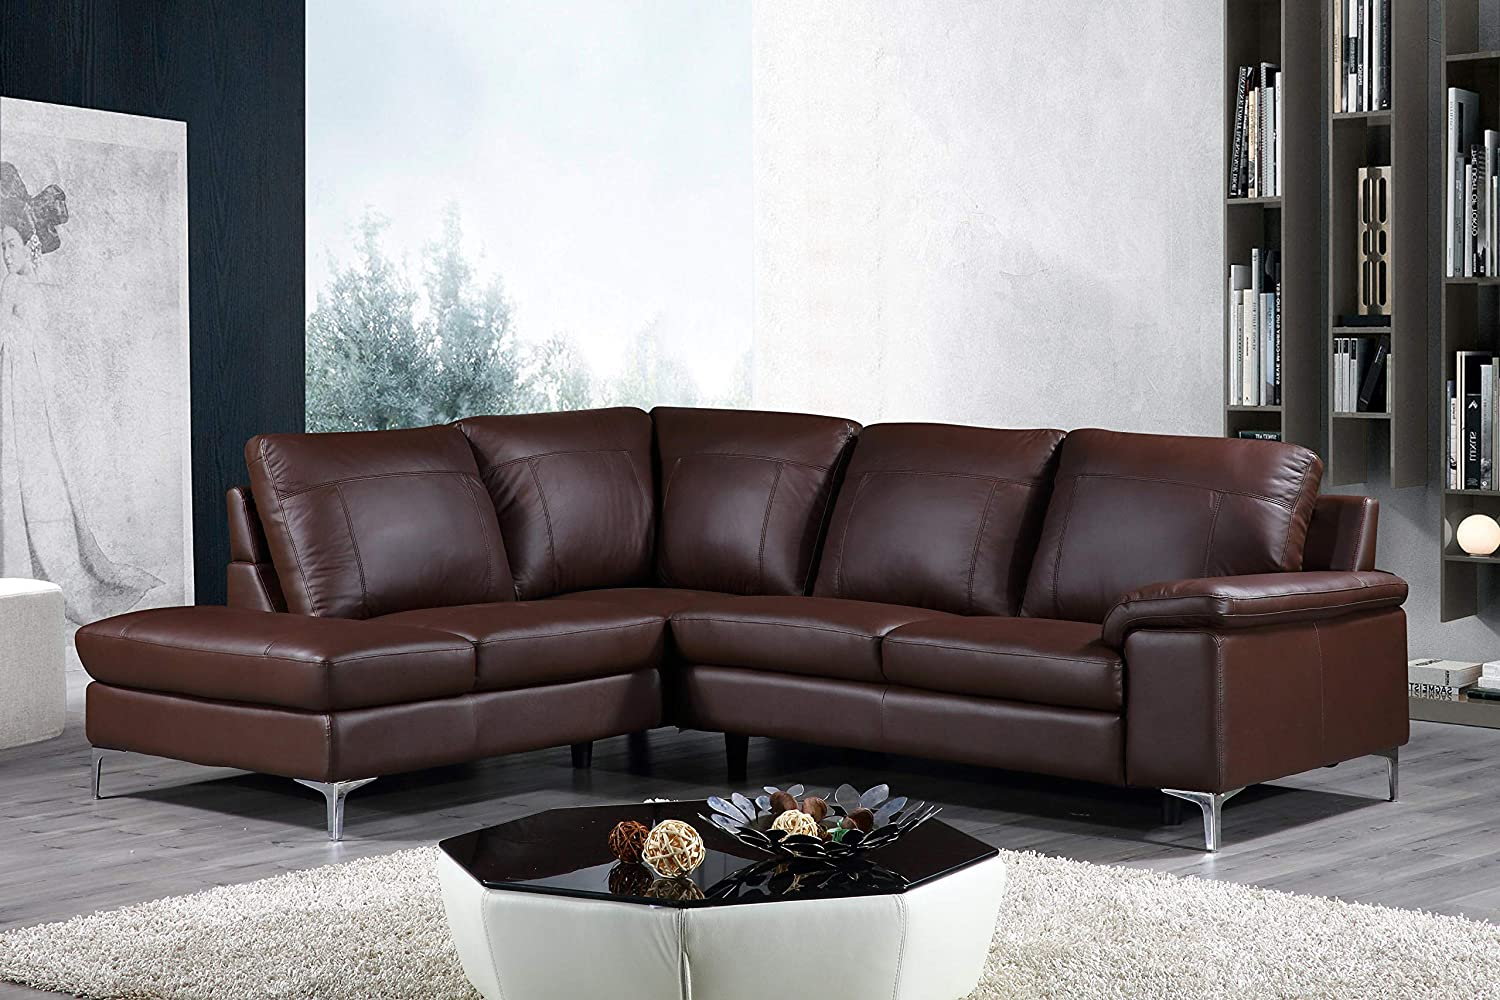 Cortesi Home Contemporary Dallas Genuine Leather Sectional Sofa with Left  Side Facing Chaise Lounge, Brown